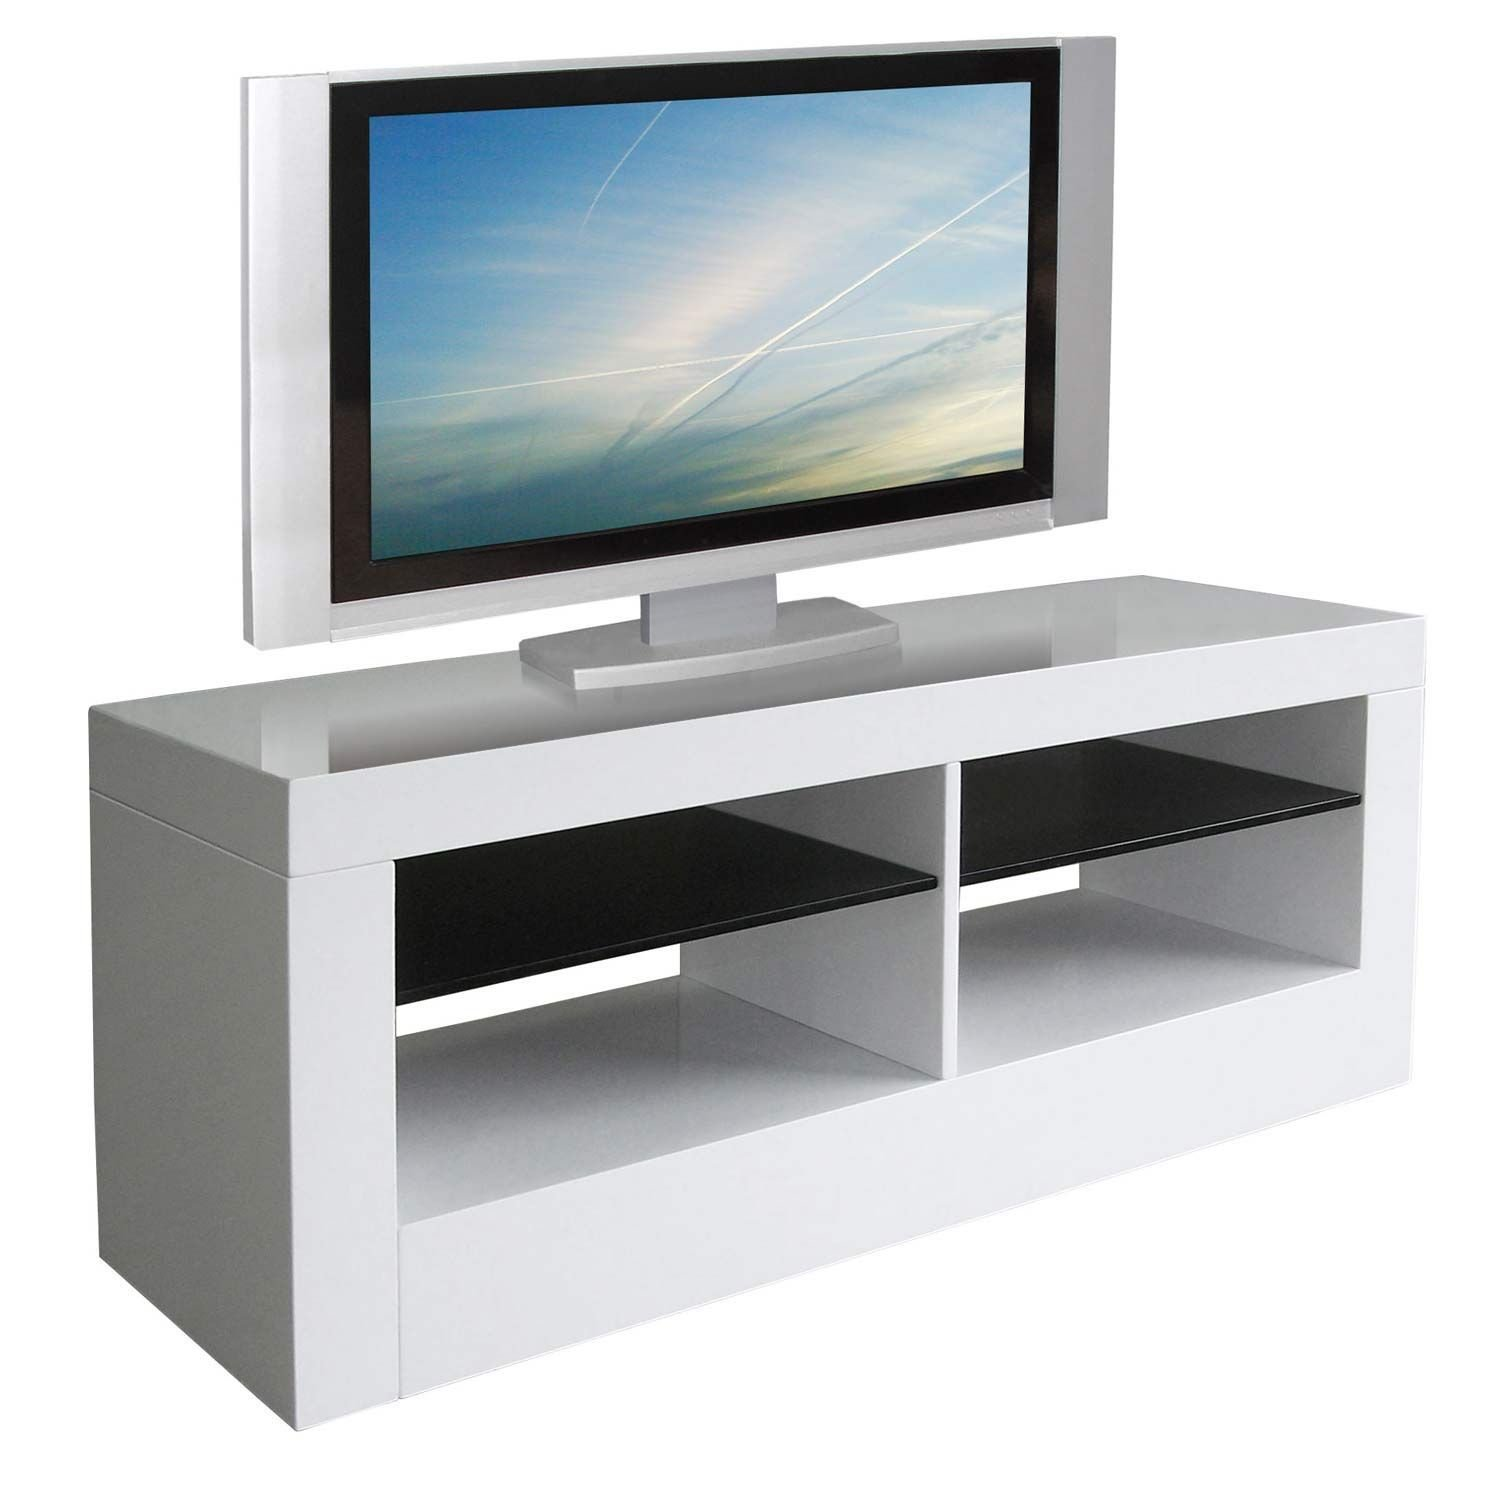 meuble tv 80 cm design maison et mobilier d 39 int rieur. Black Bedroom Furniture Sets. Home Design Ideas